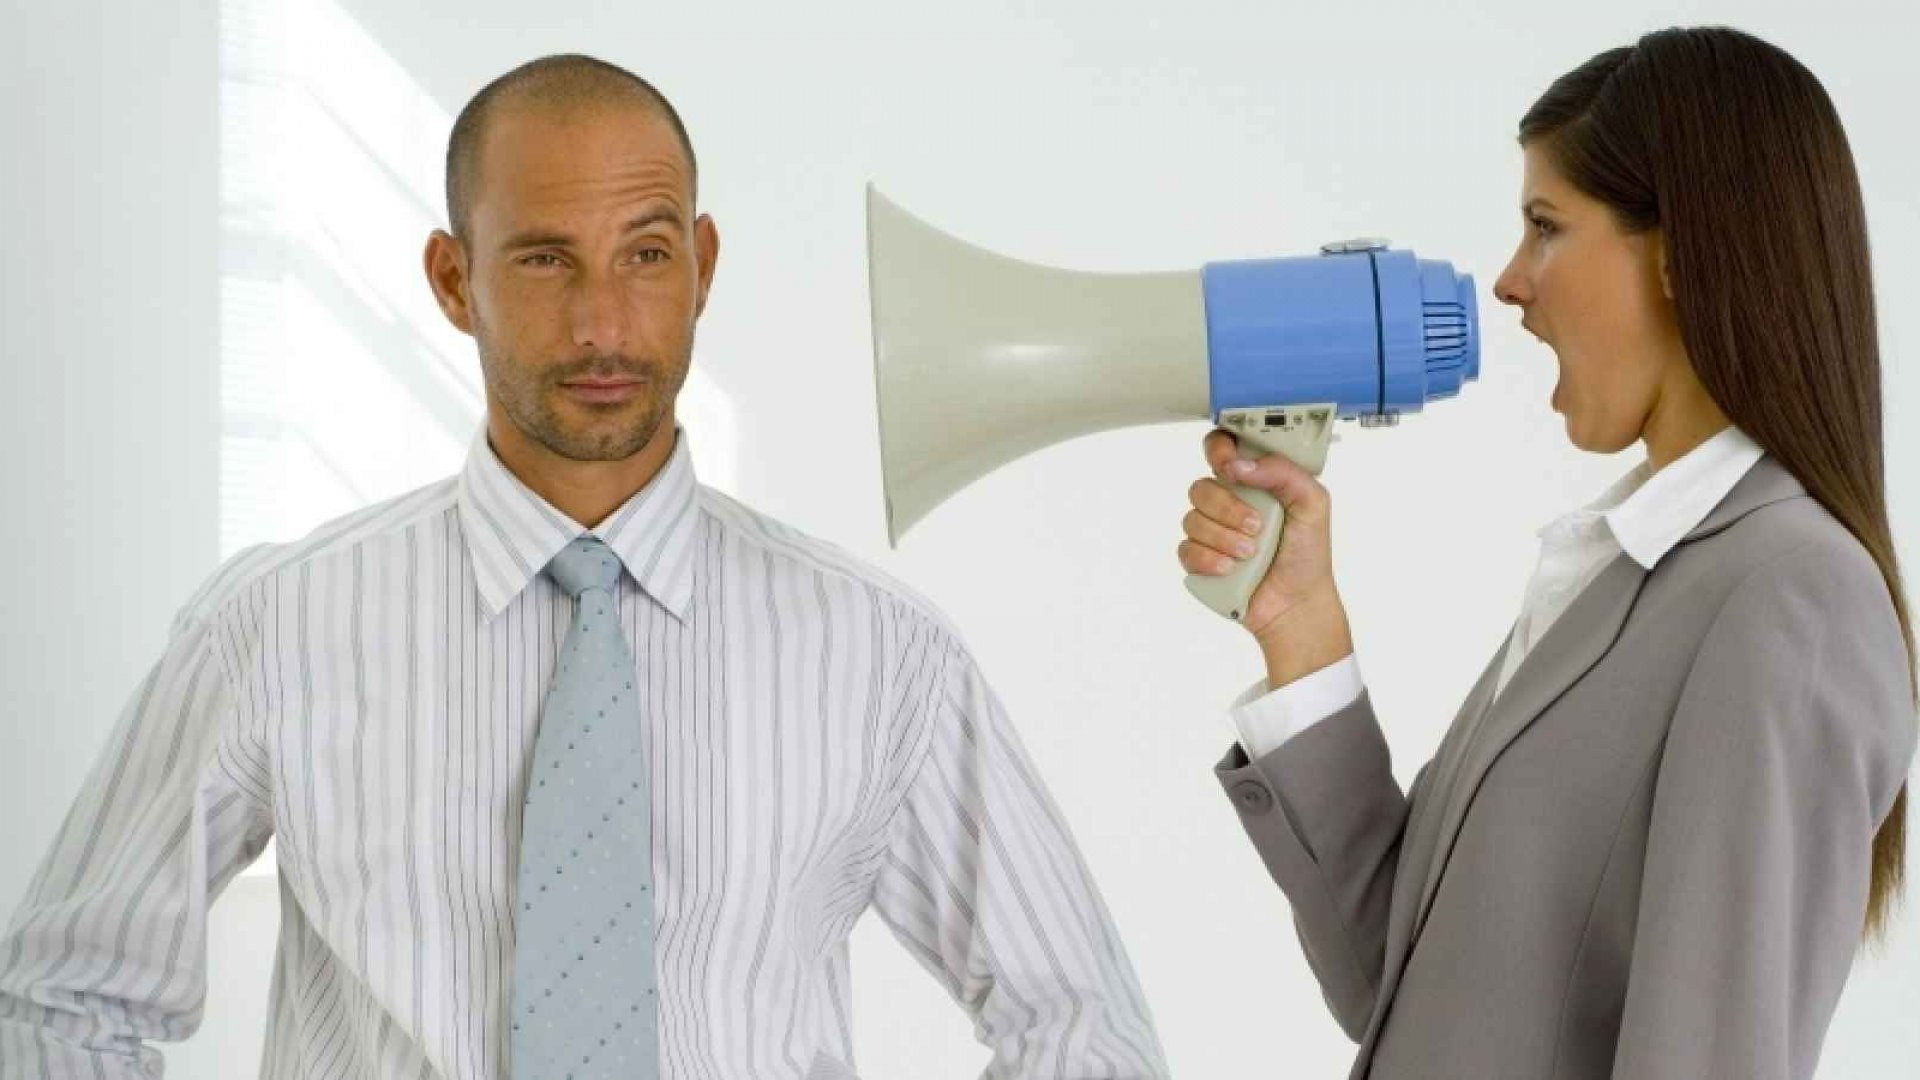 Show 'Em Who's Boss: 4 Tips for Successfully Managing Your Peers After a Promotion